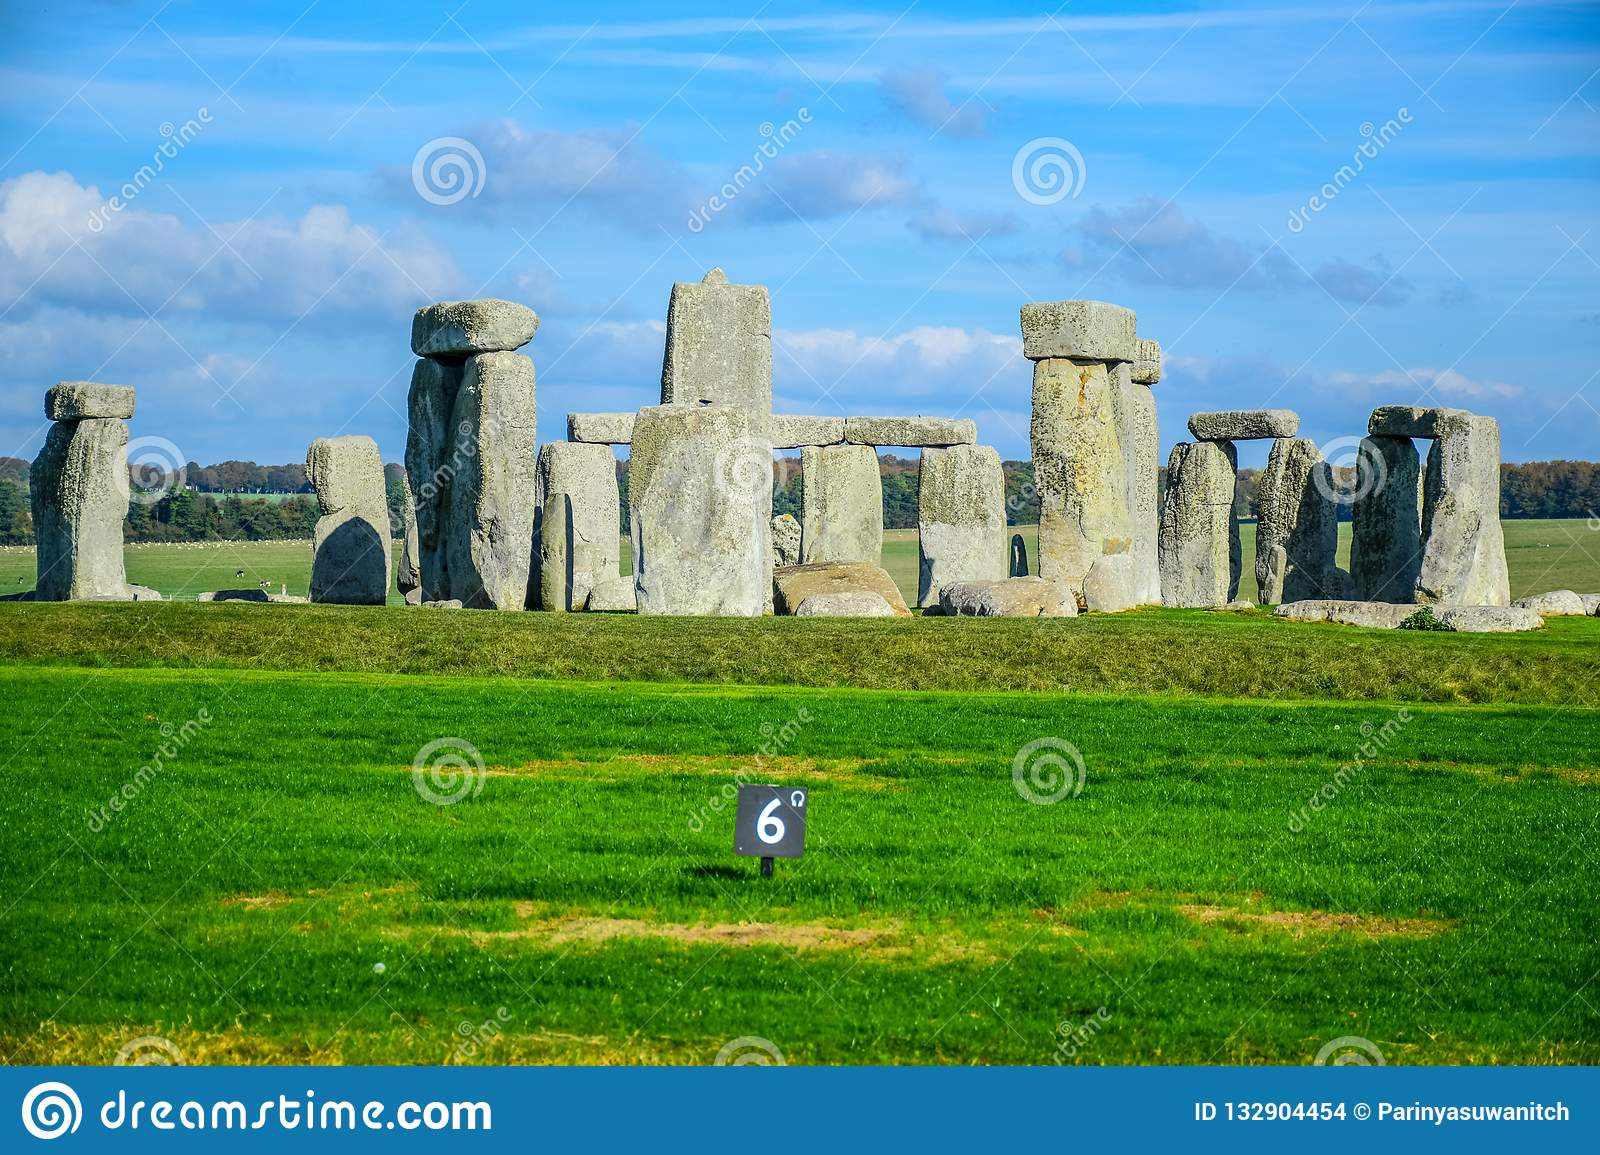 Landscape view of Stonehenge in Salisbury, Wiltshire, England, UK